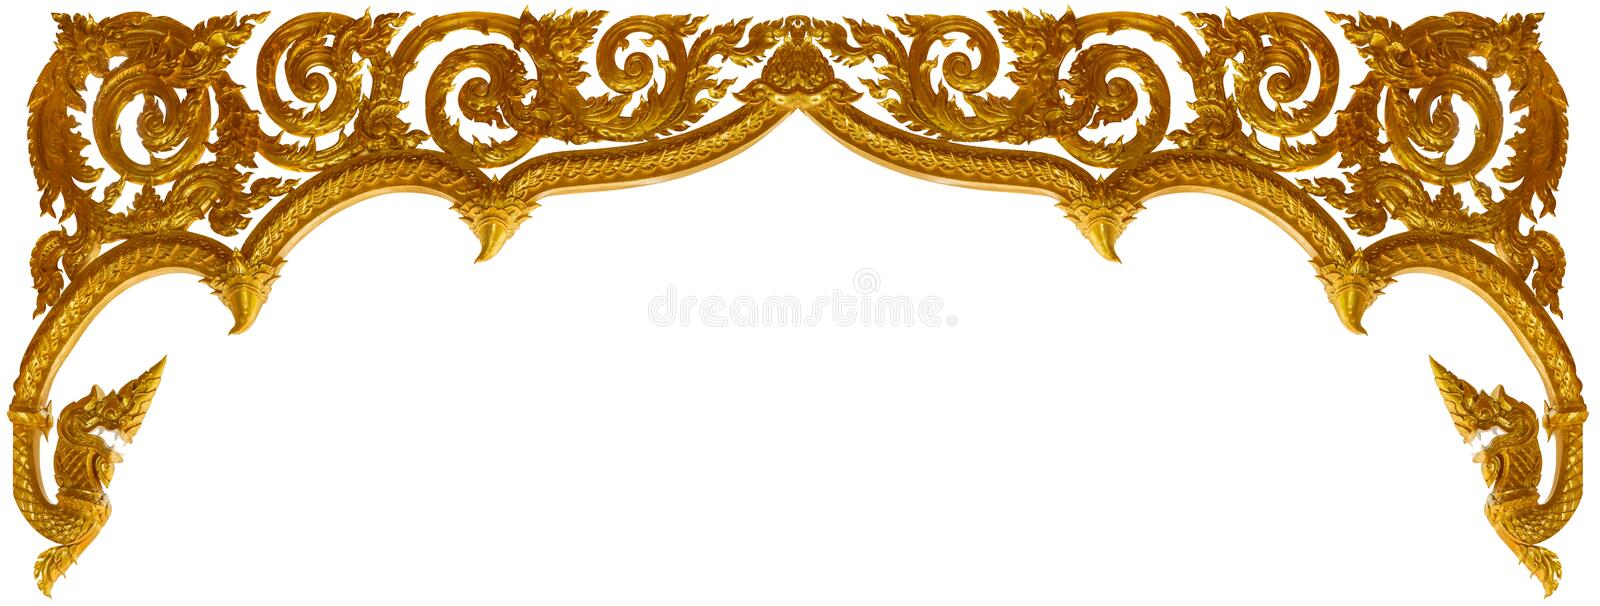 Gold carved ornament frame art isolated on white background.  royalty free stock photo